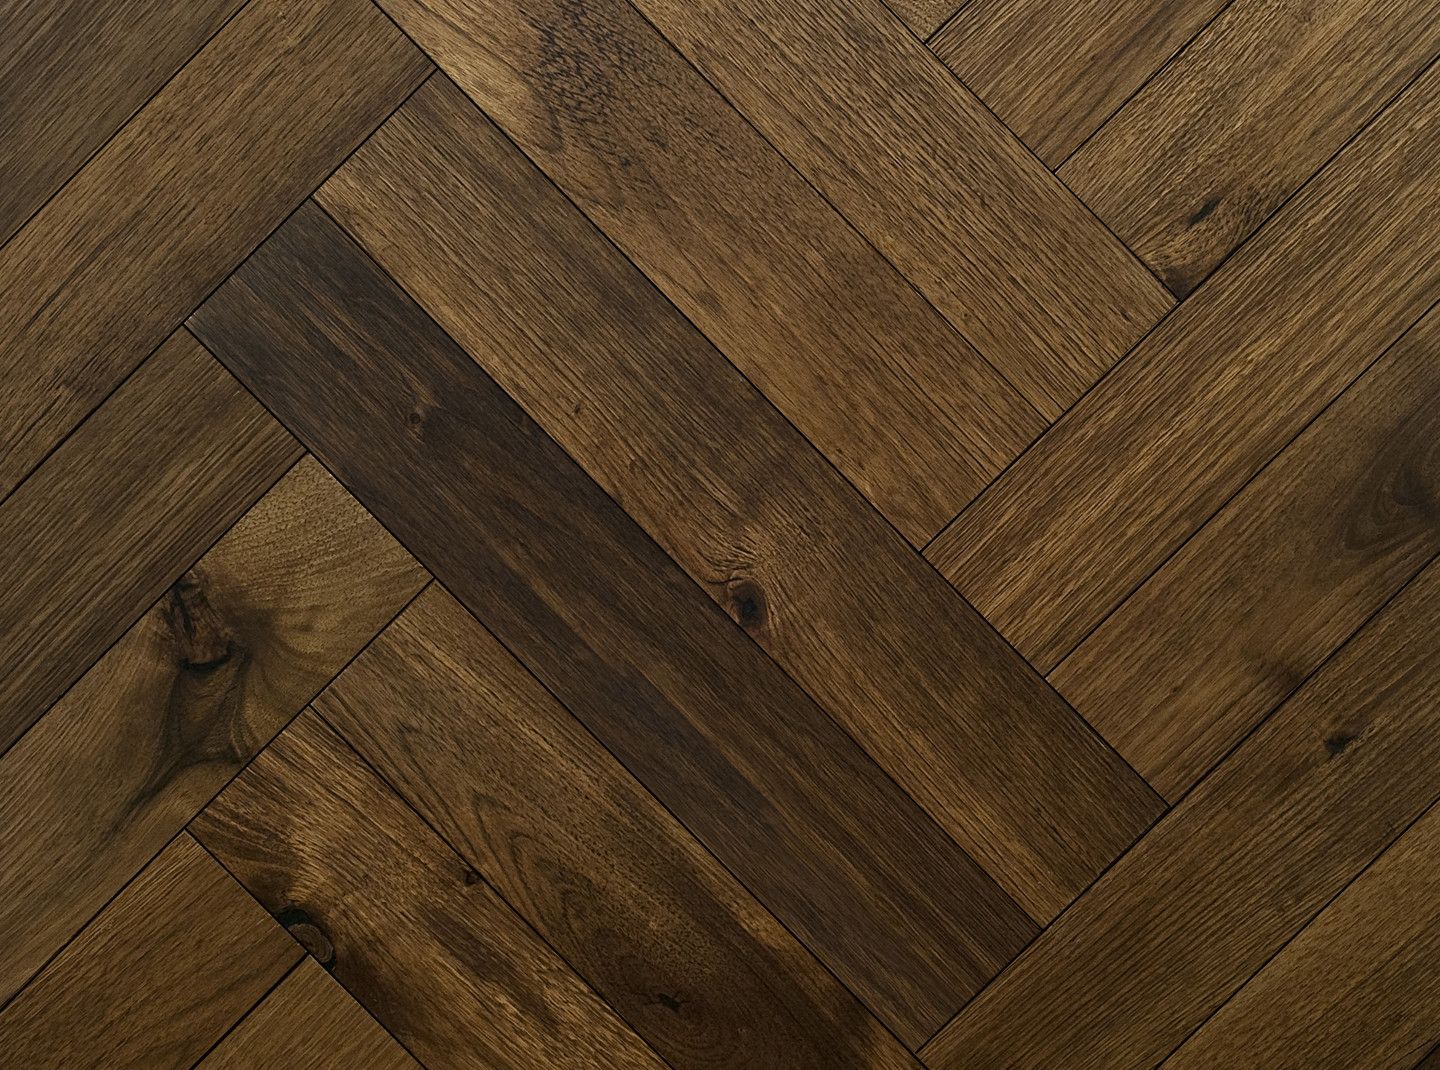 Ab Hardwood Flooring and Supplies Chicago Il 60618 Of Duchateau the New Classics Collection Double Herringbone Ab Pertaining to Duchateau the New Classics Collection Double Herringbone Ab Hardwood Flooring and Supplies